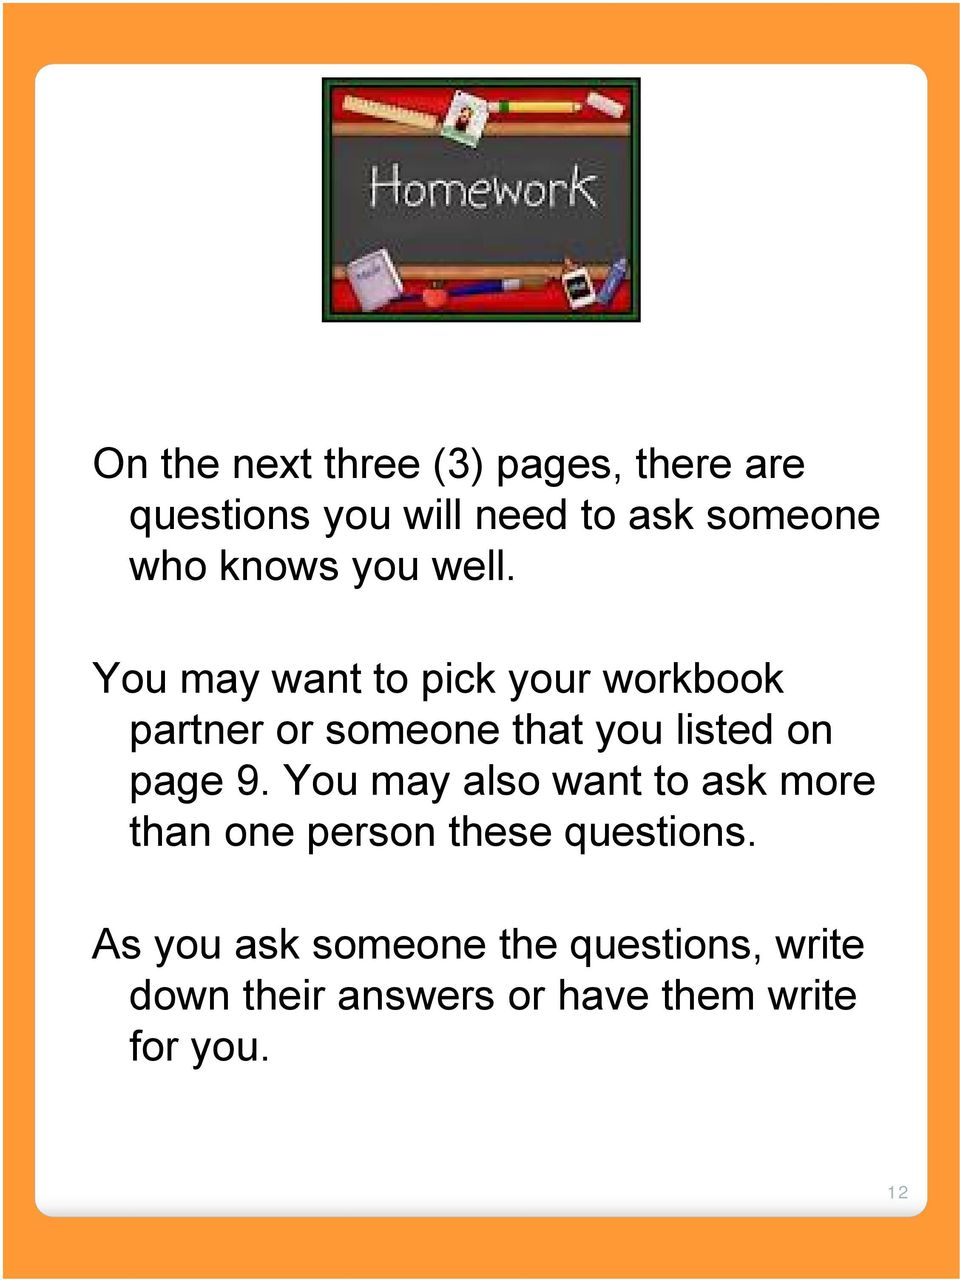 You may want to pick your workbook partner or someone that you listed on page 9.